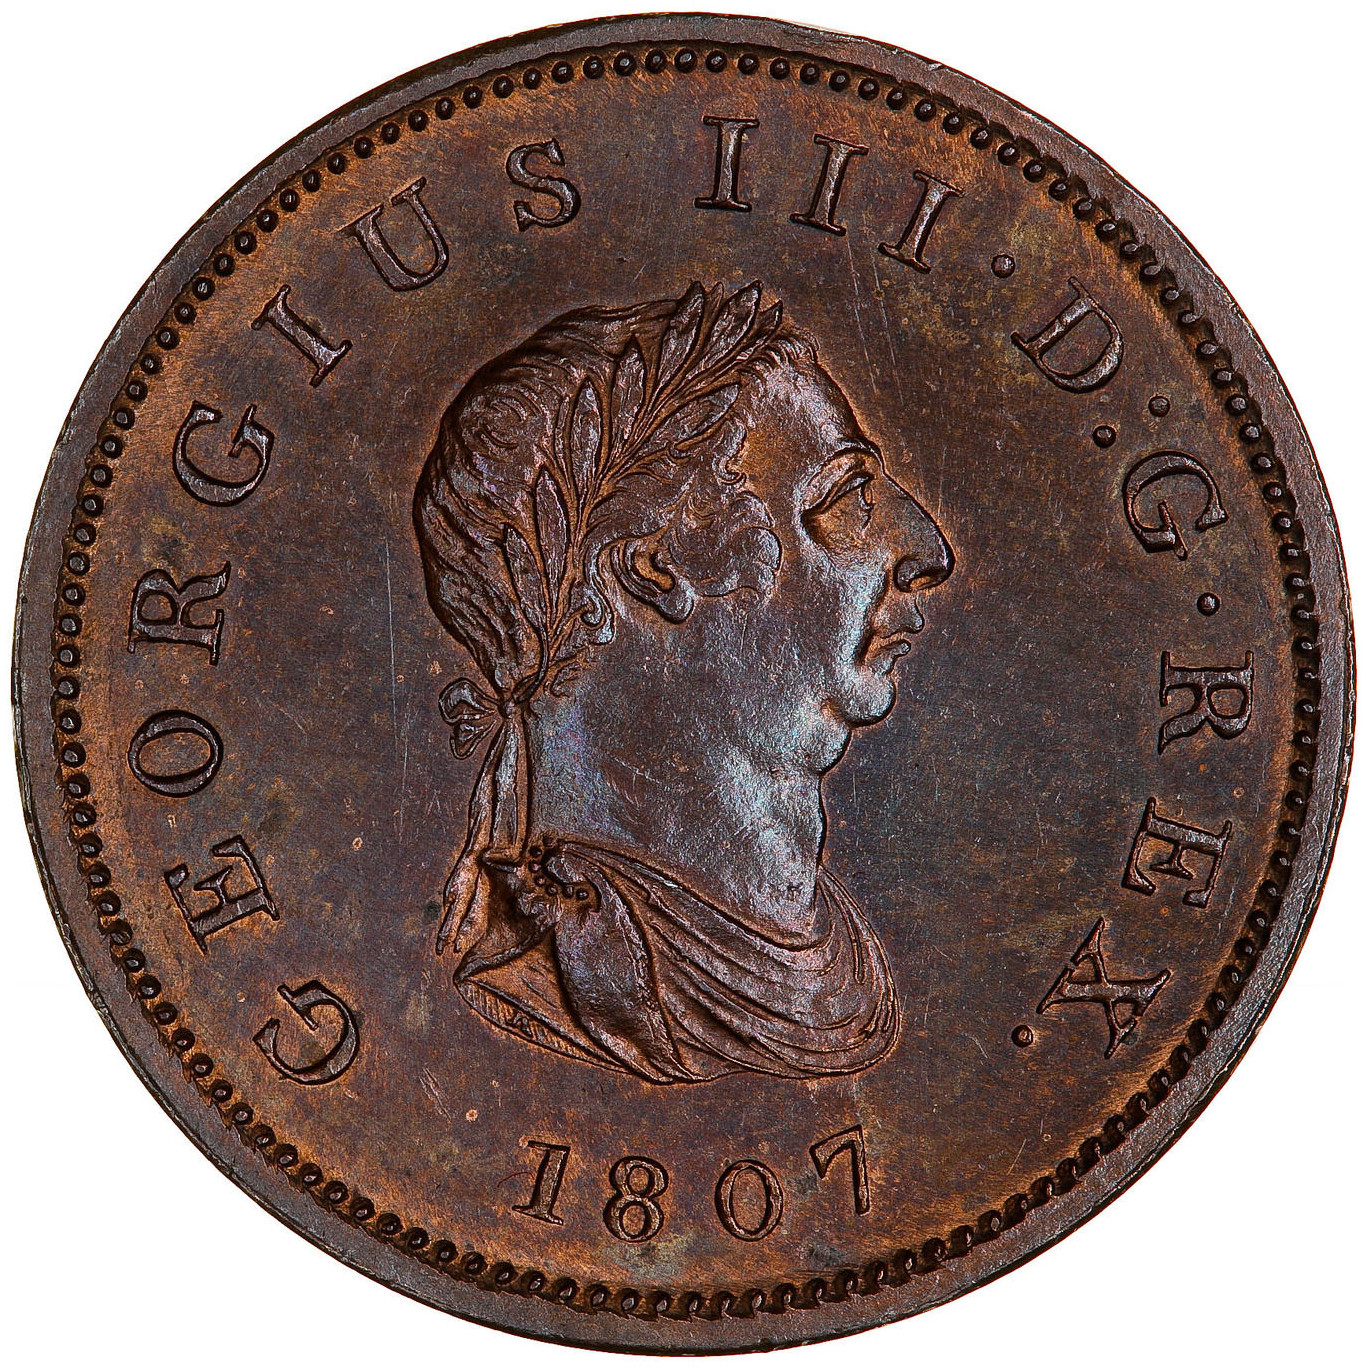 Halfpenny 1807: Photo Coin - Halfpenny, George III, Great Britain, 1807